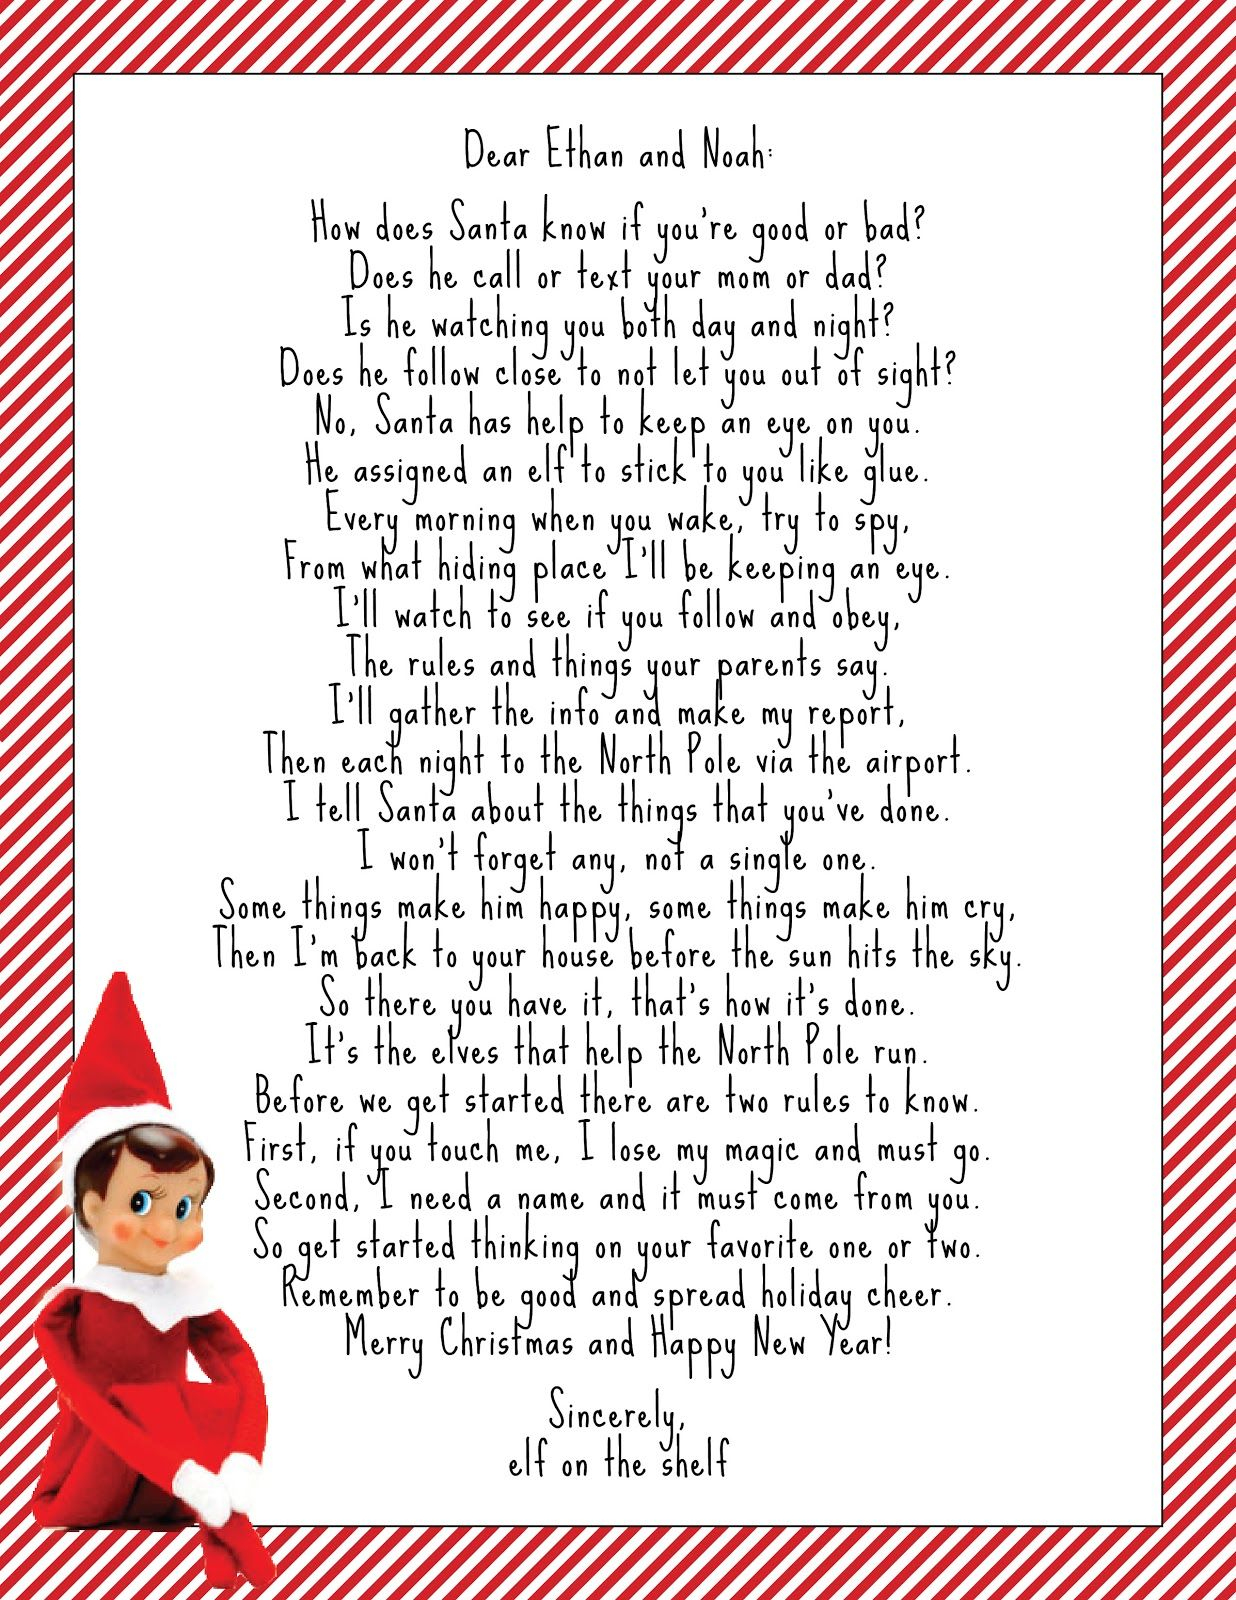 Elf on the shelf welcome letter google search kids room elf on the shelf welcome letter google search spiritdancerdesigns Gallery